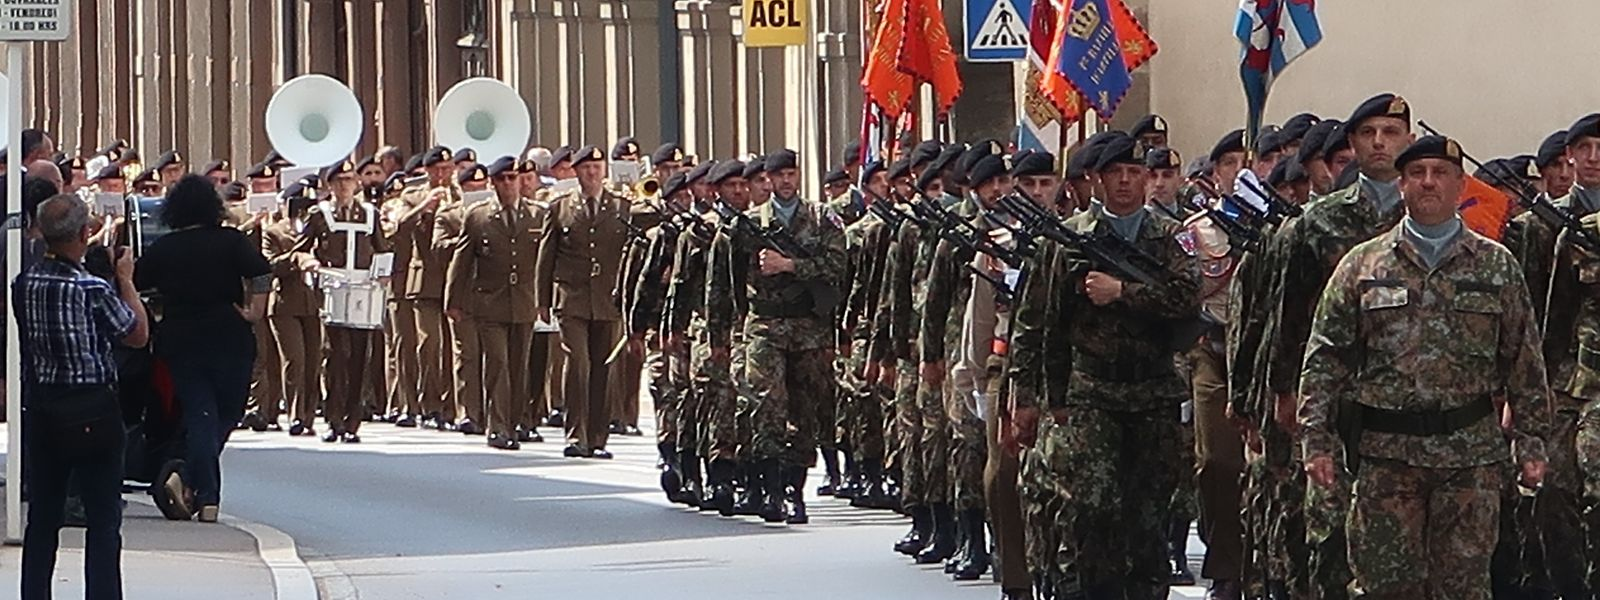 Militärparade in der Rue de Stavelot